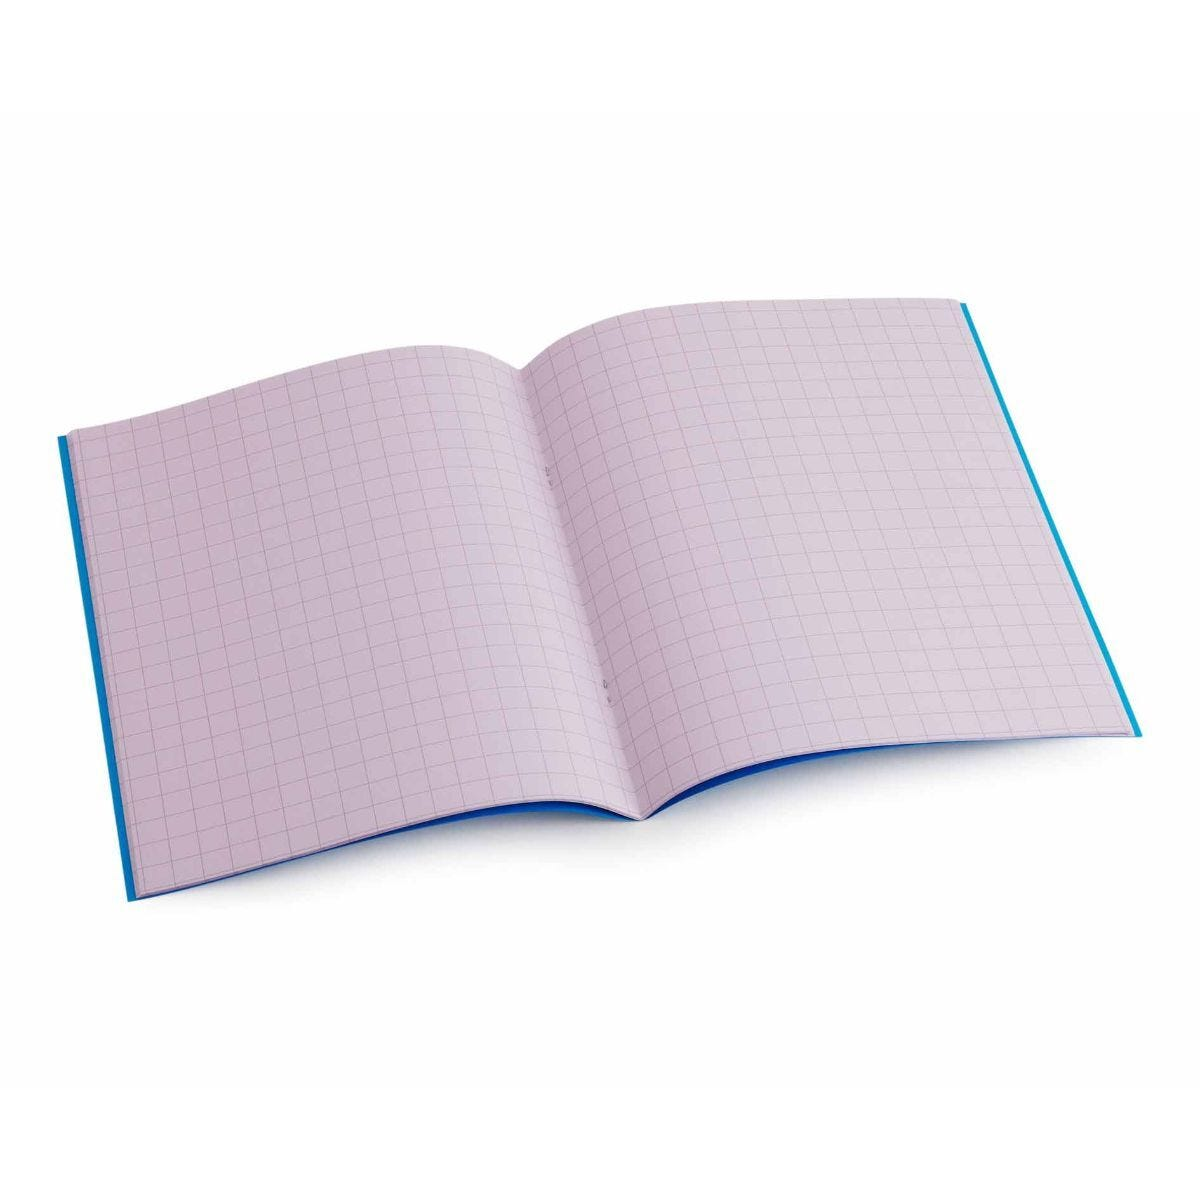 Tinted Exercise Book Standard 7x9 Squared 10mm Purple